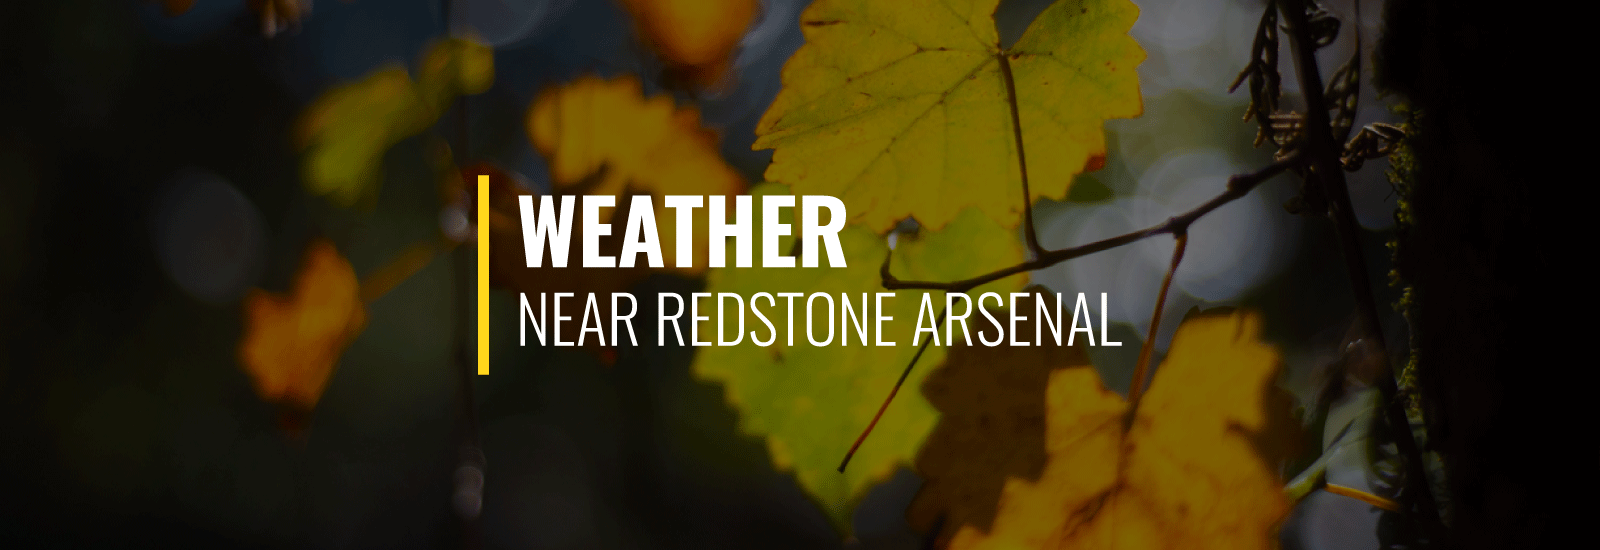 Redstone Arsenal Weather